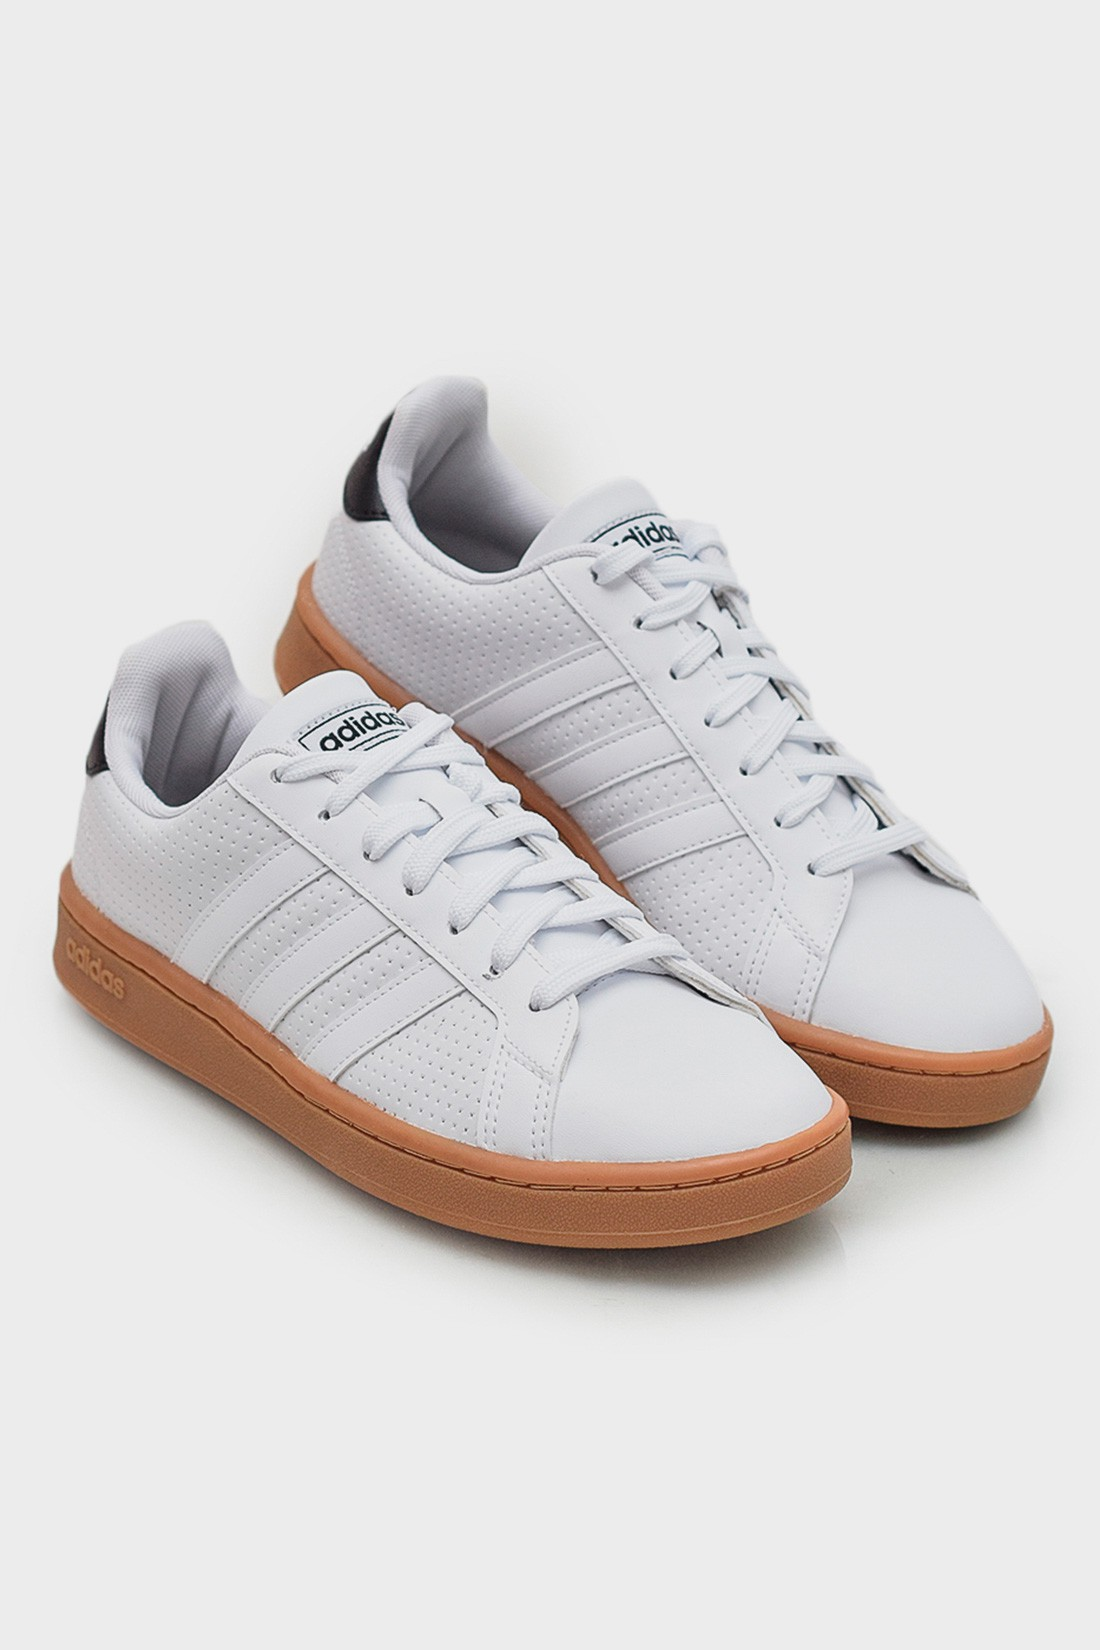 Tenis Casual Adidas Grand Court